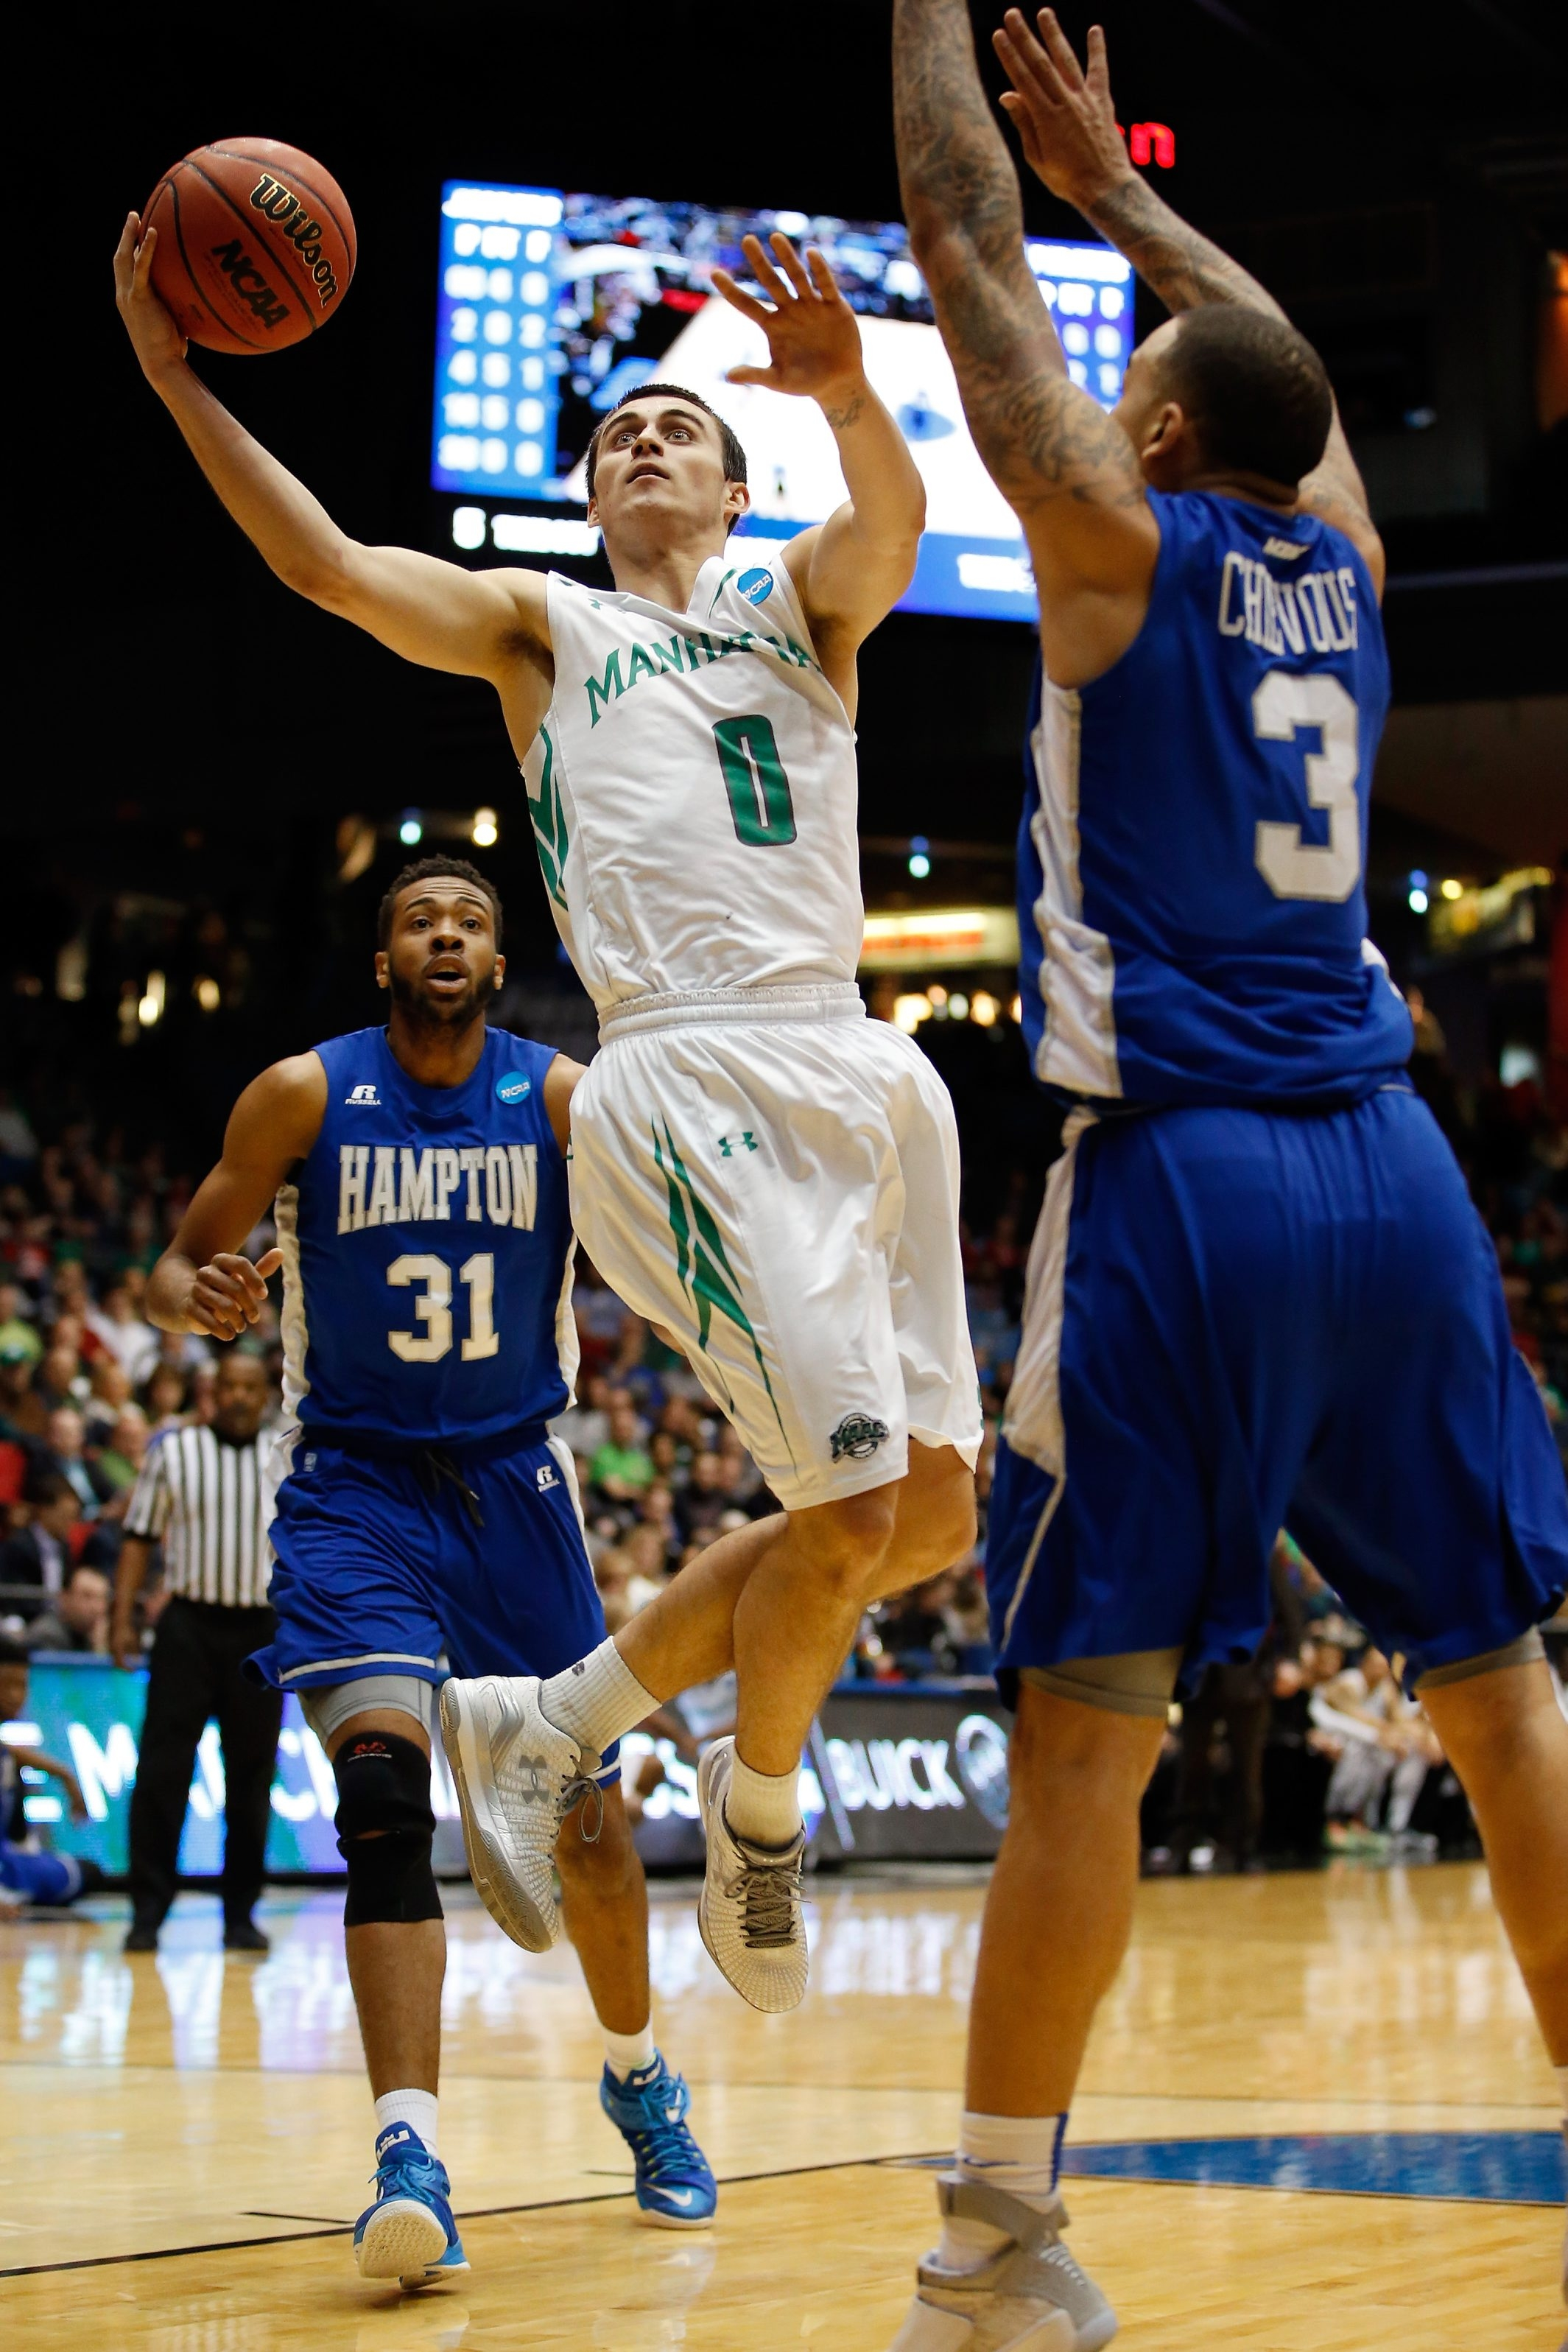 Manhattan's Shane Richards, playing against Hampton last March, ranks fourth in the MAAC in scoring, averaging 17.8 points per game. The Jaspers play at Canisius on Thursday and at Niagara on Saturday.